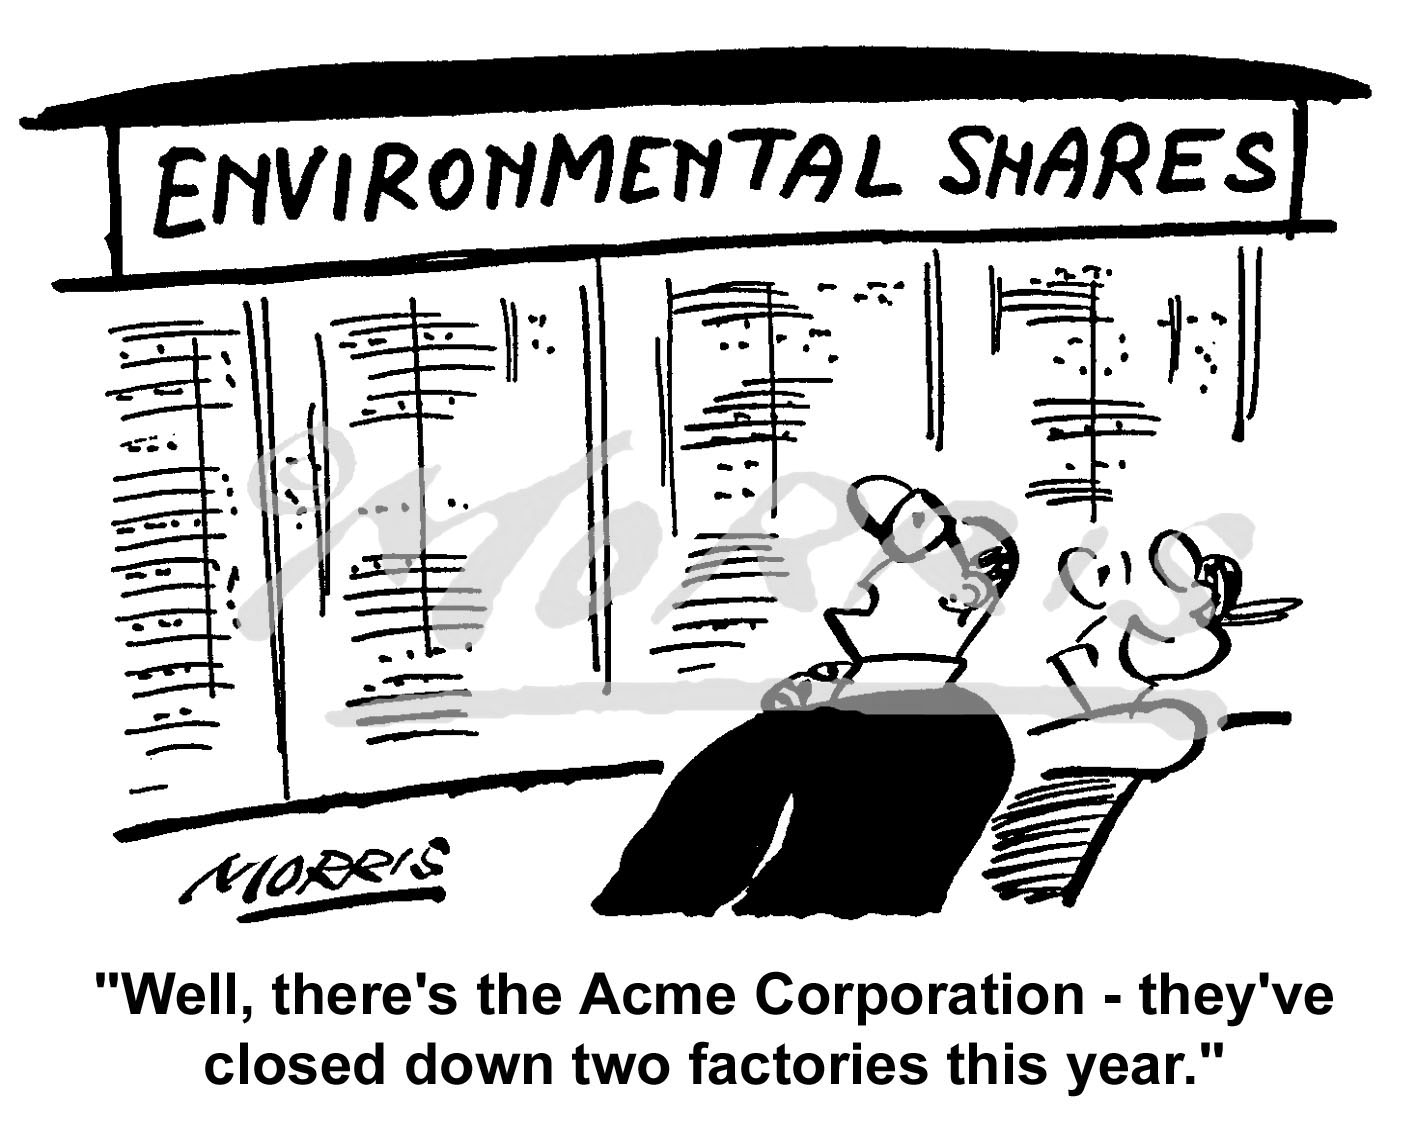 Environment shares cartoon Ref: 0766bw